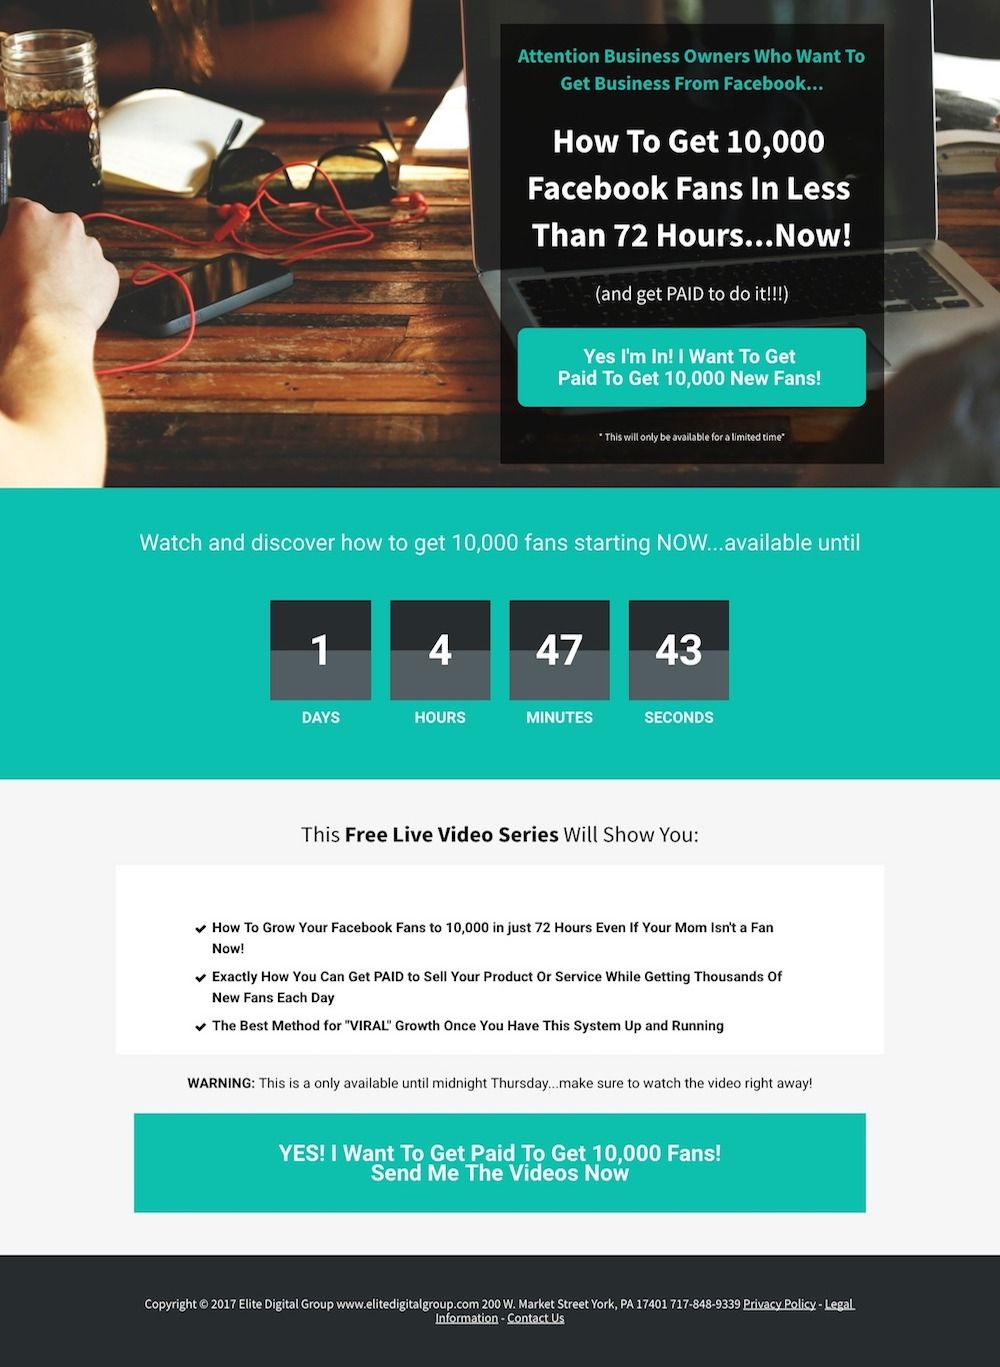 Landing page for Get 10 000 Facebook Fans in 72 Hours